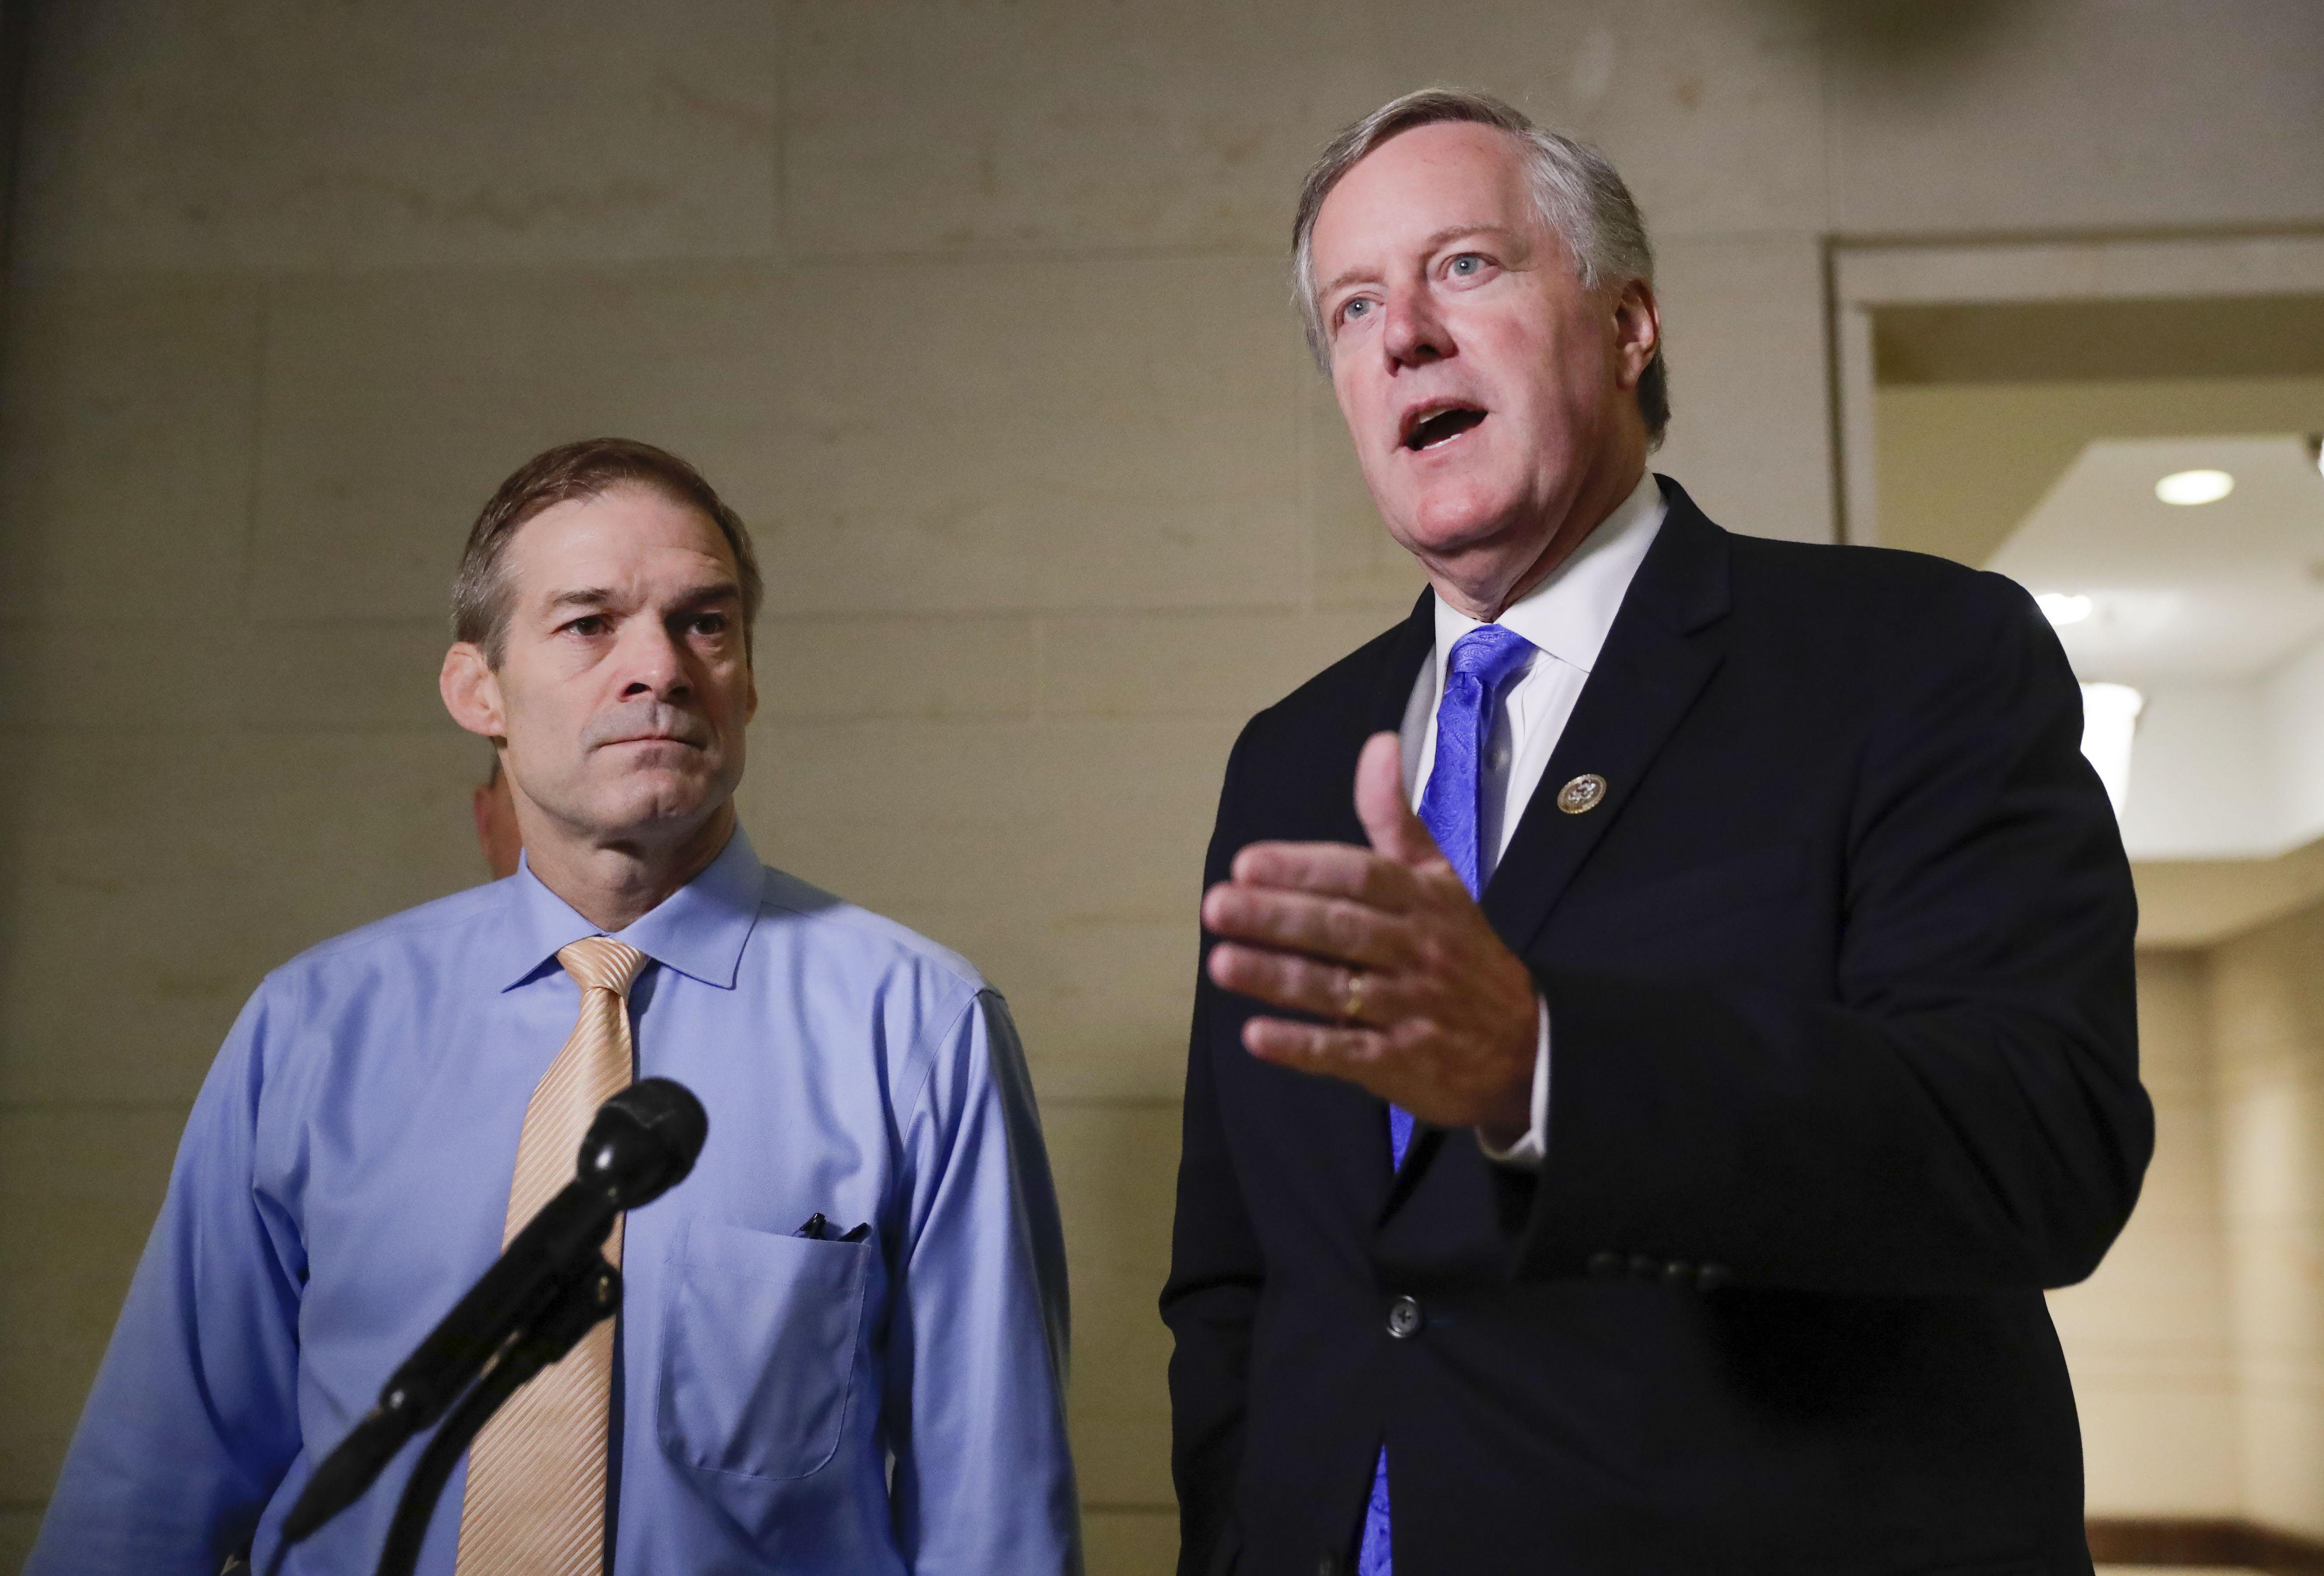 Jordan, Meadows demand to know why Obama DOJ official was appointed by